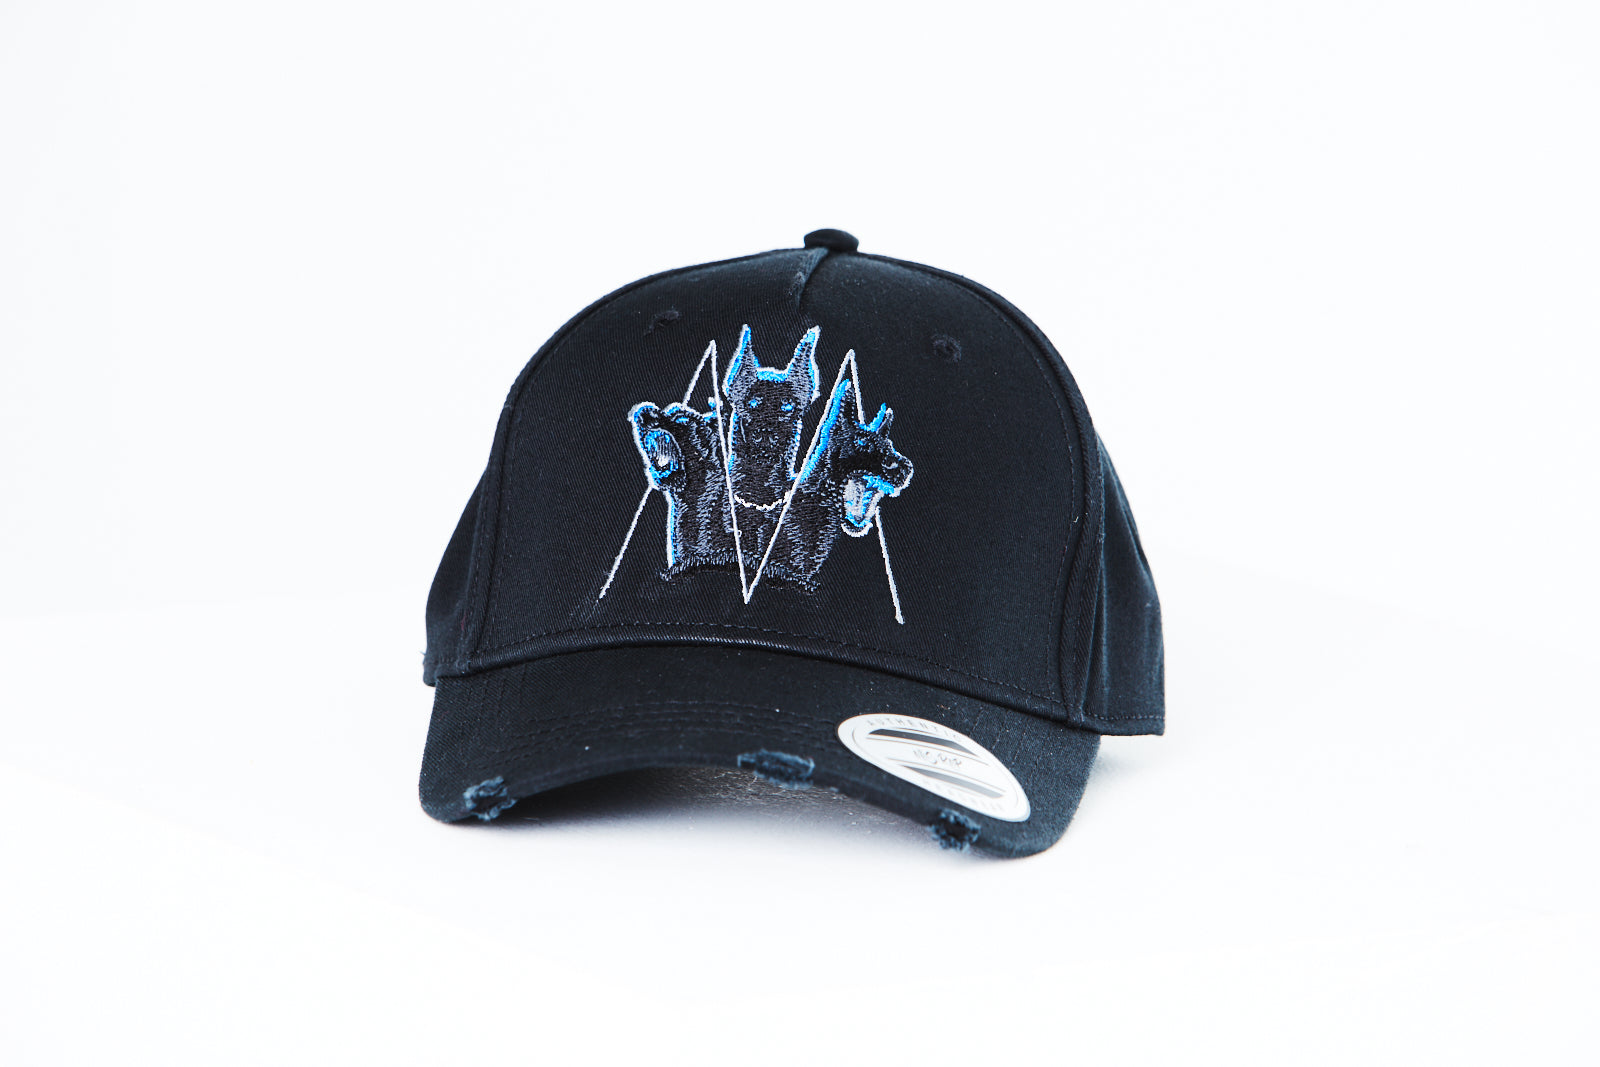 Distressed Blue Cerberus Cap (Black)